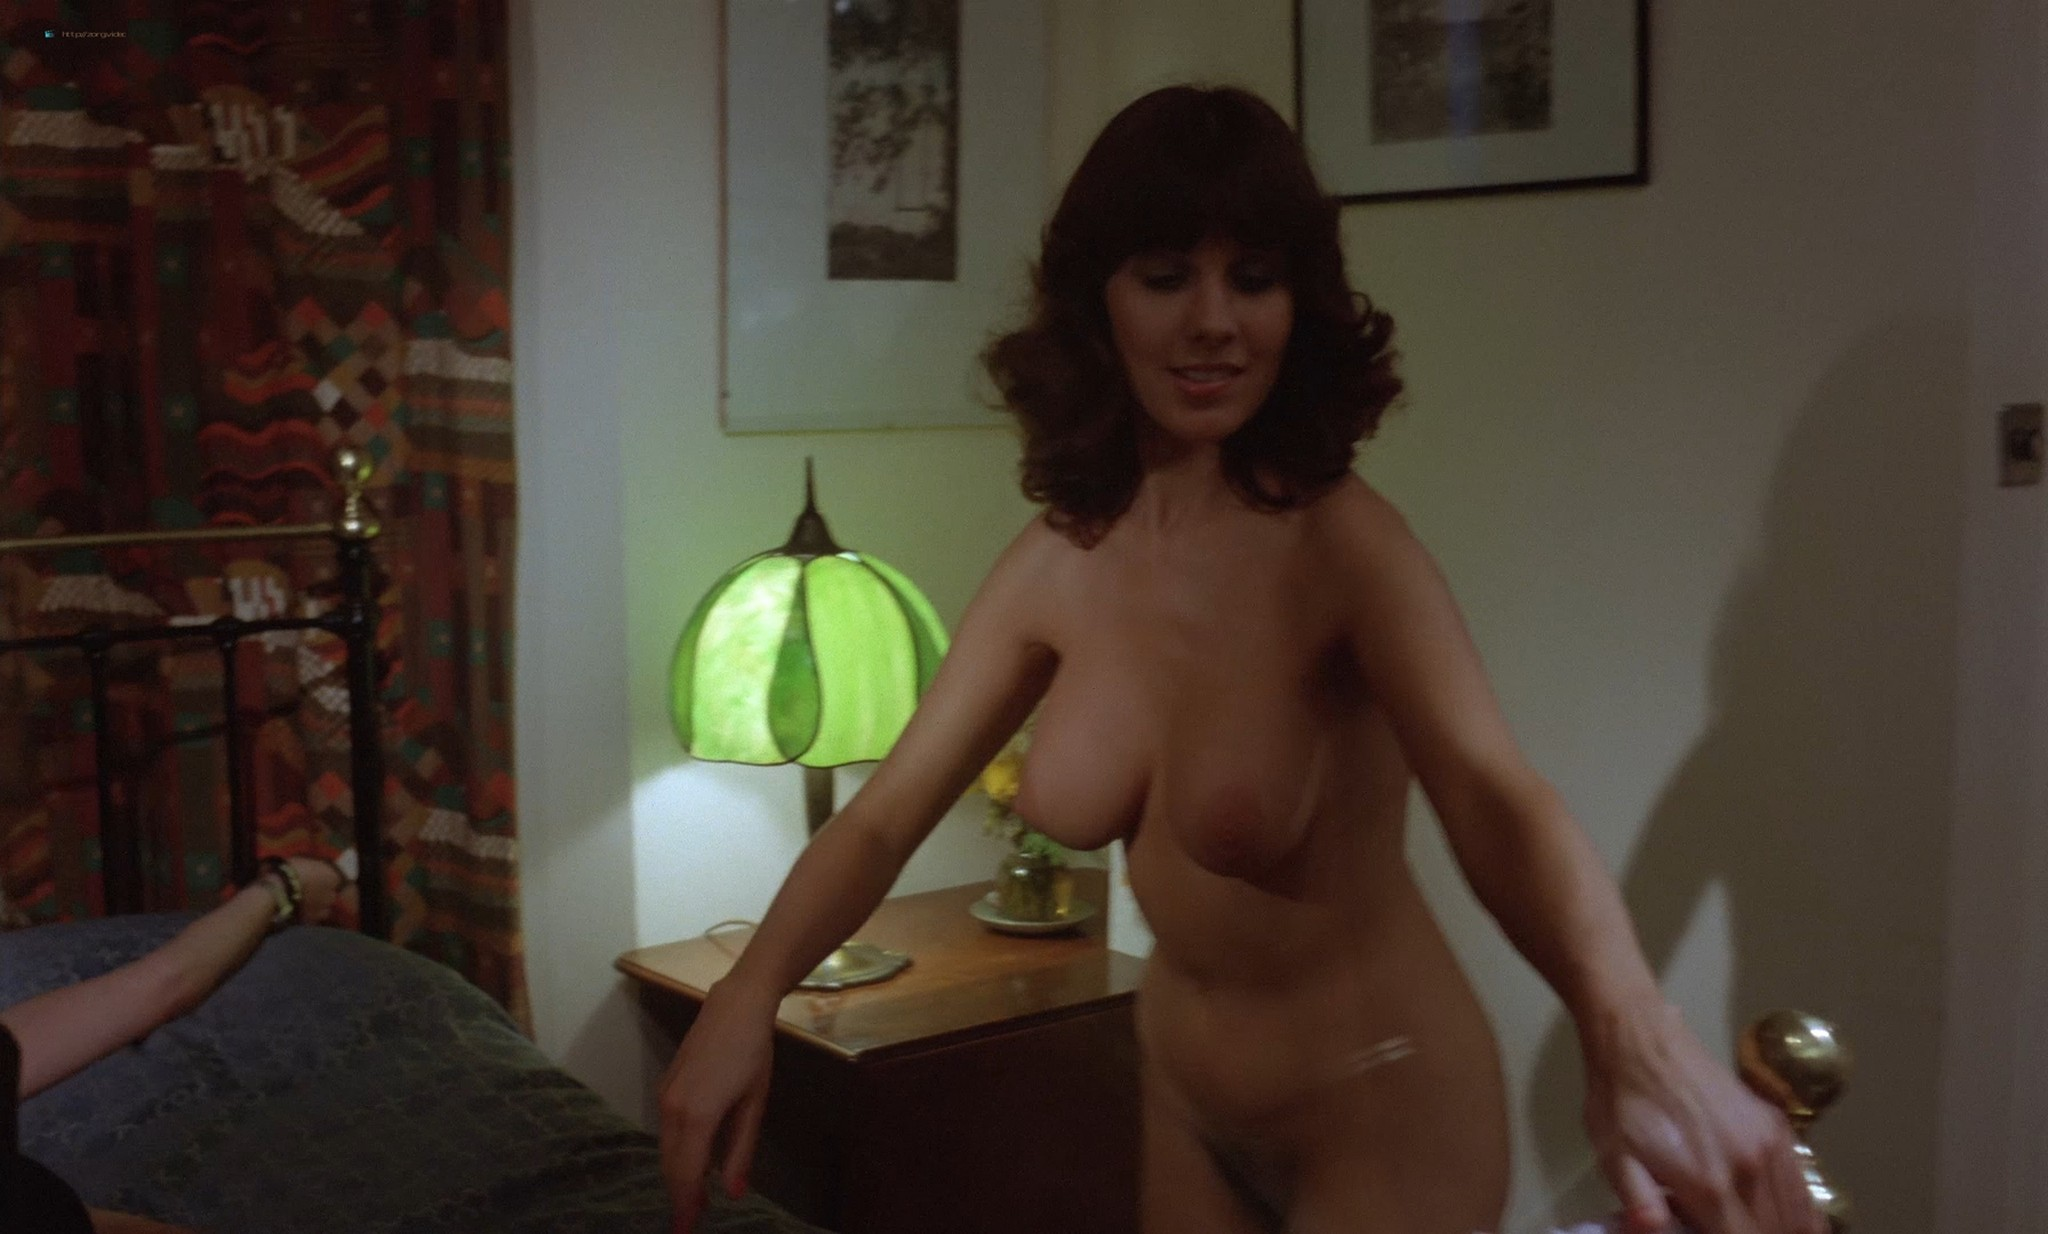 Mary Millington nude sex Rosemary England and others nude - Confessions from the David Galaxy Affair (1979) HD 1080p BluRay (2)